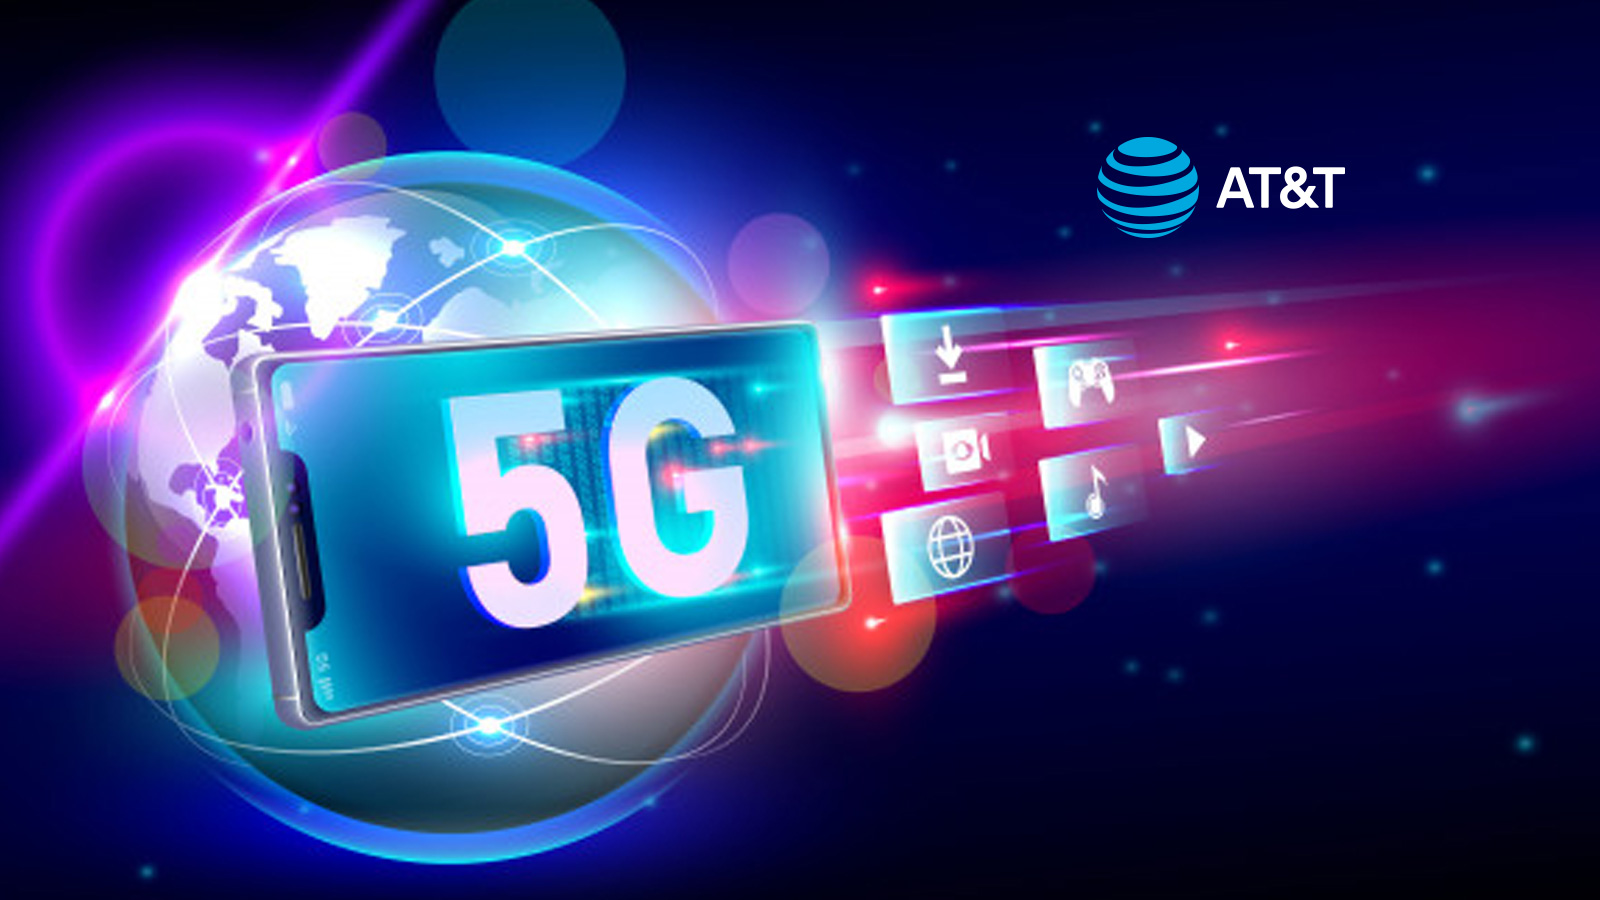 AT&T expands 5G hotspot service to 19 cities